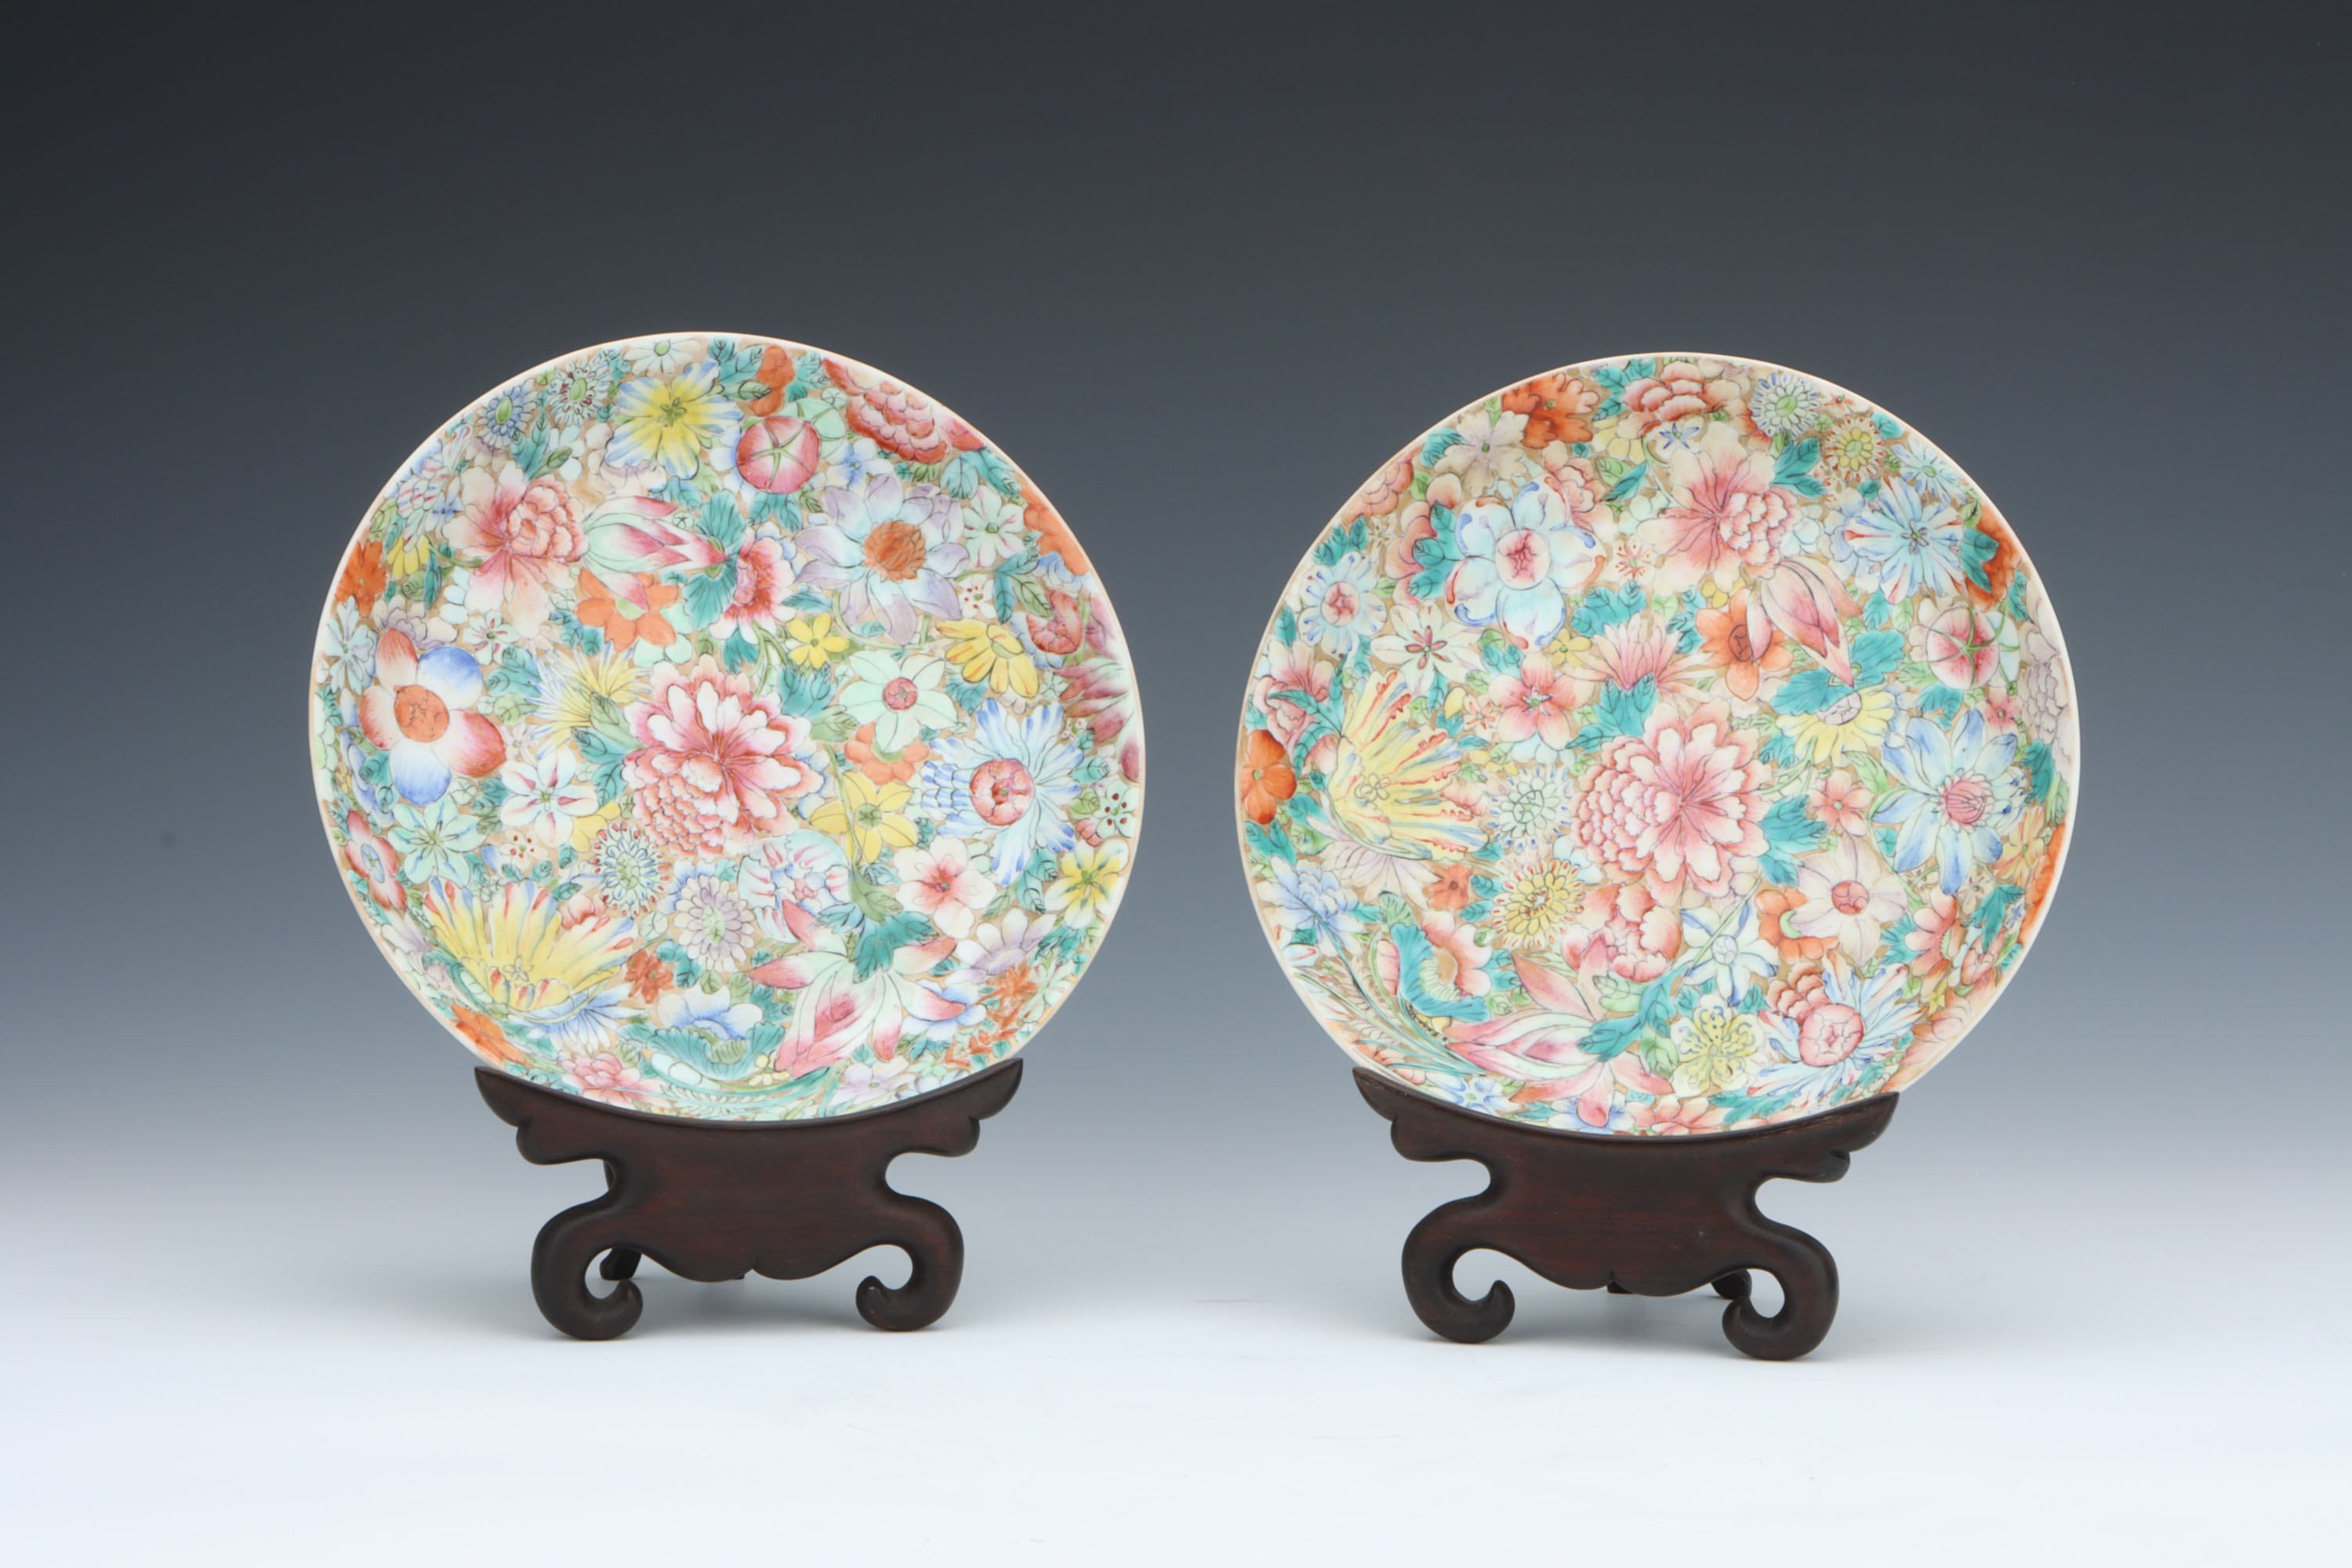 A Pair of Chinese Millefiore Shallow Bowls,